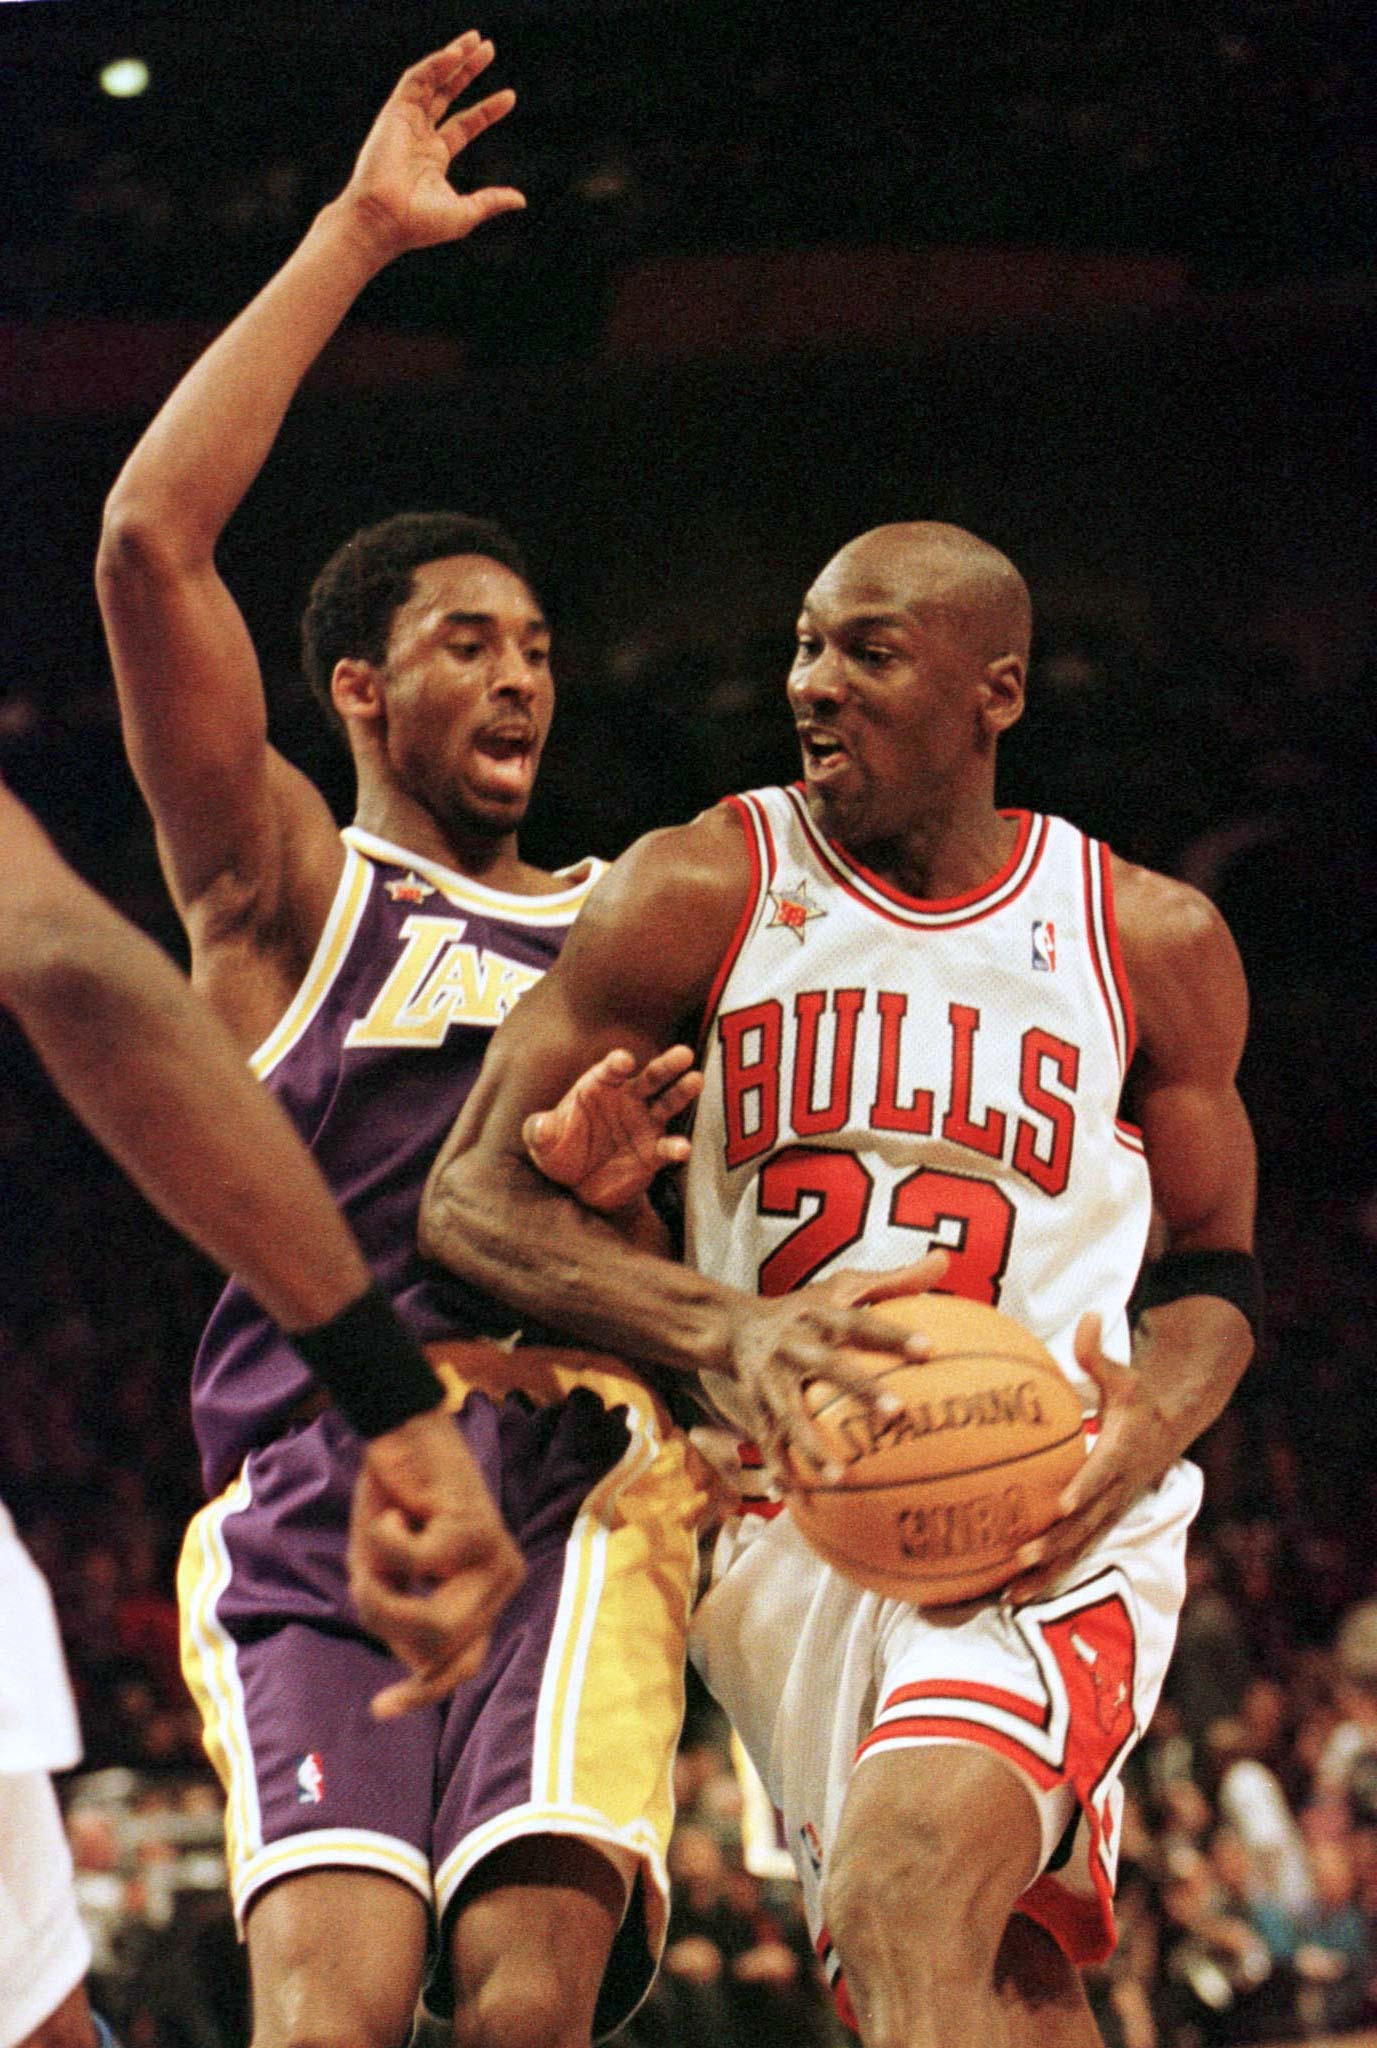 Bryant's real emergence as a budding star came in his second season, when he became the youngest starter in an NBA All-Star Game in New York's Madison Square Garden on Feb 8., 1998. He had already begun to elicit comparisons to Chicago Bulls star Michael Jordan, seen here driving past him.